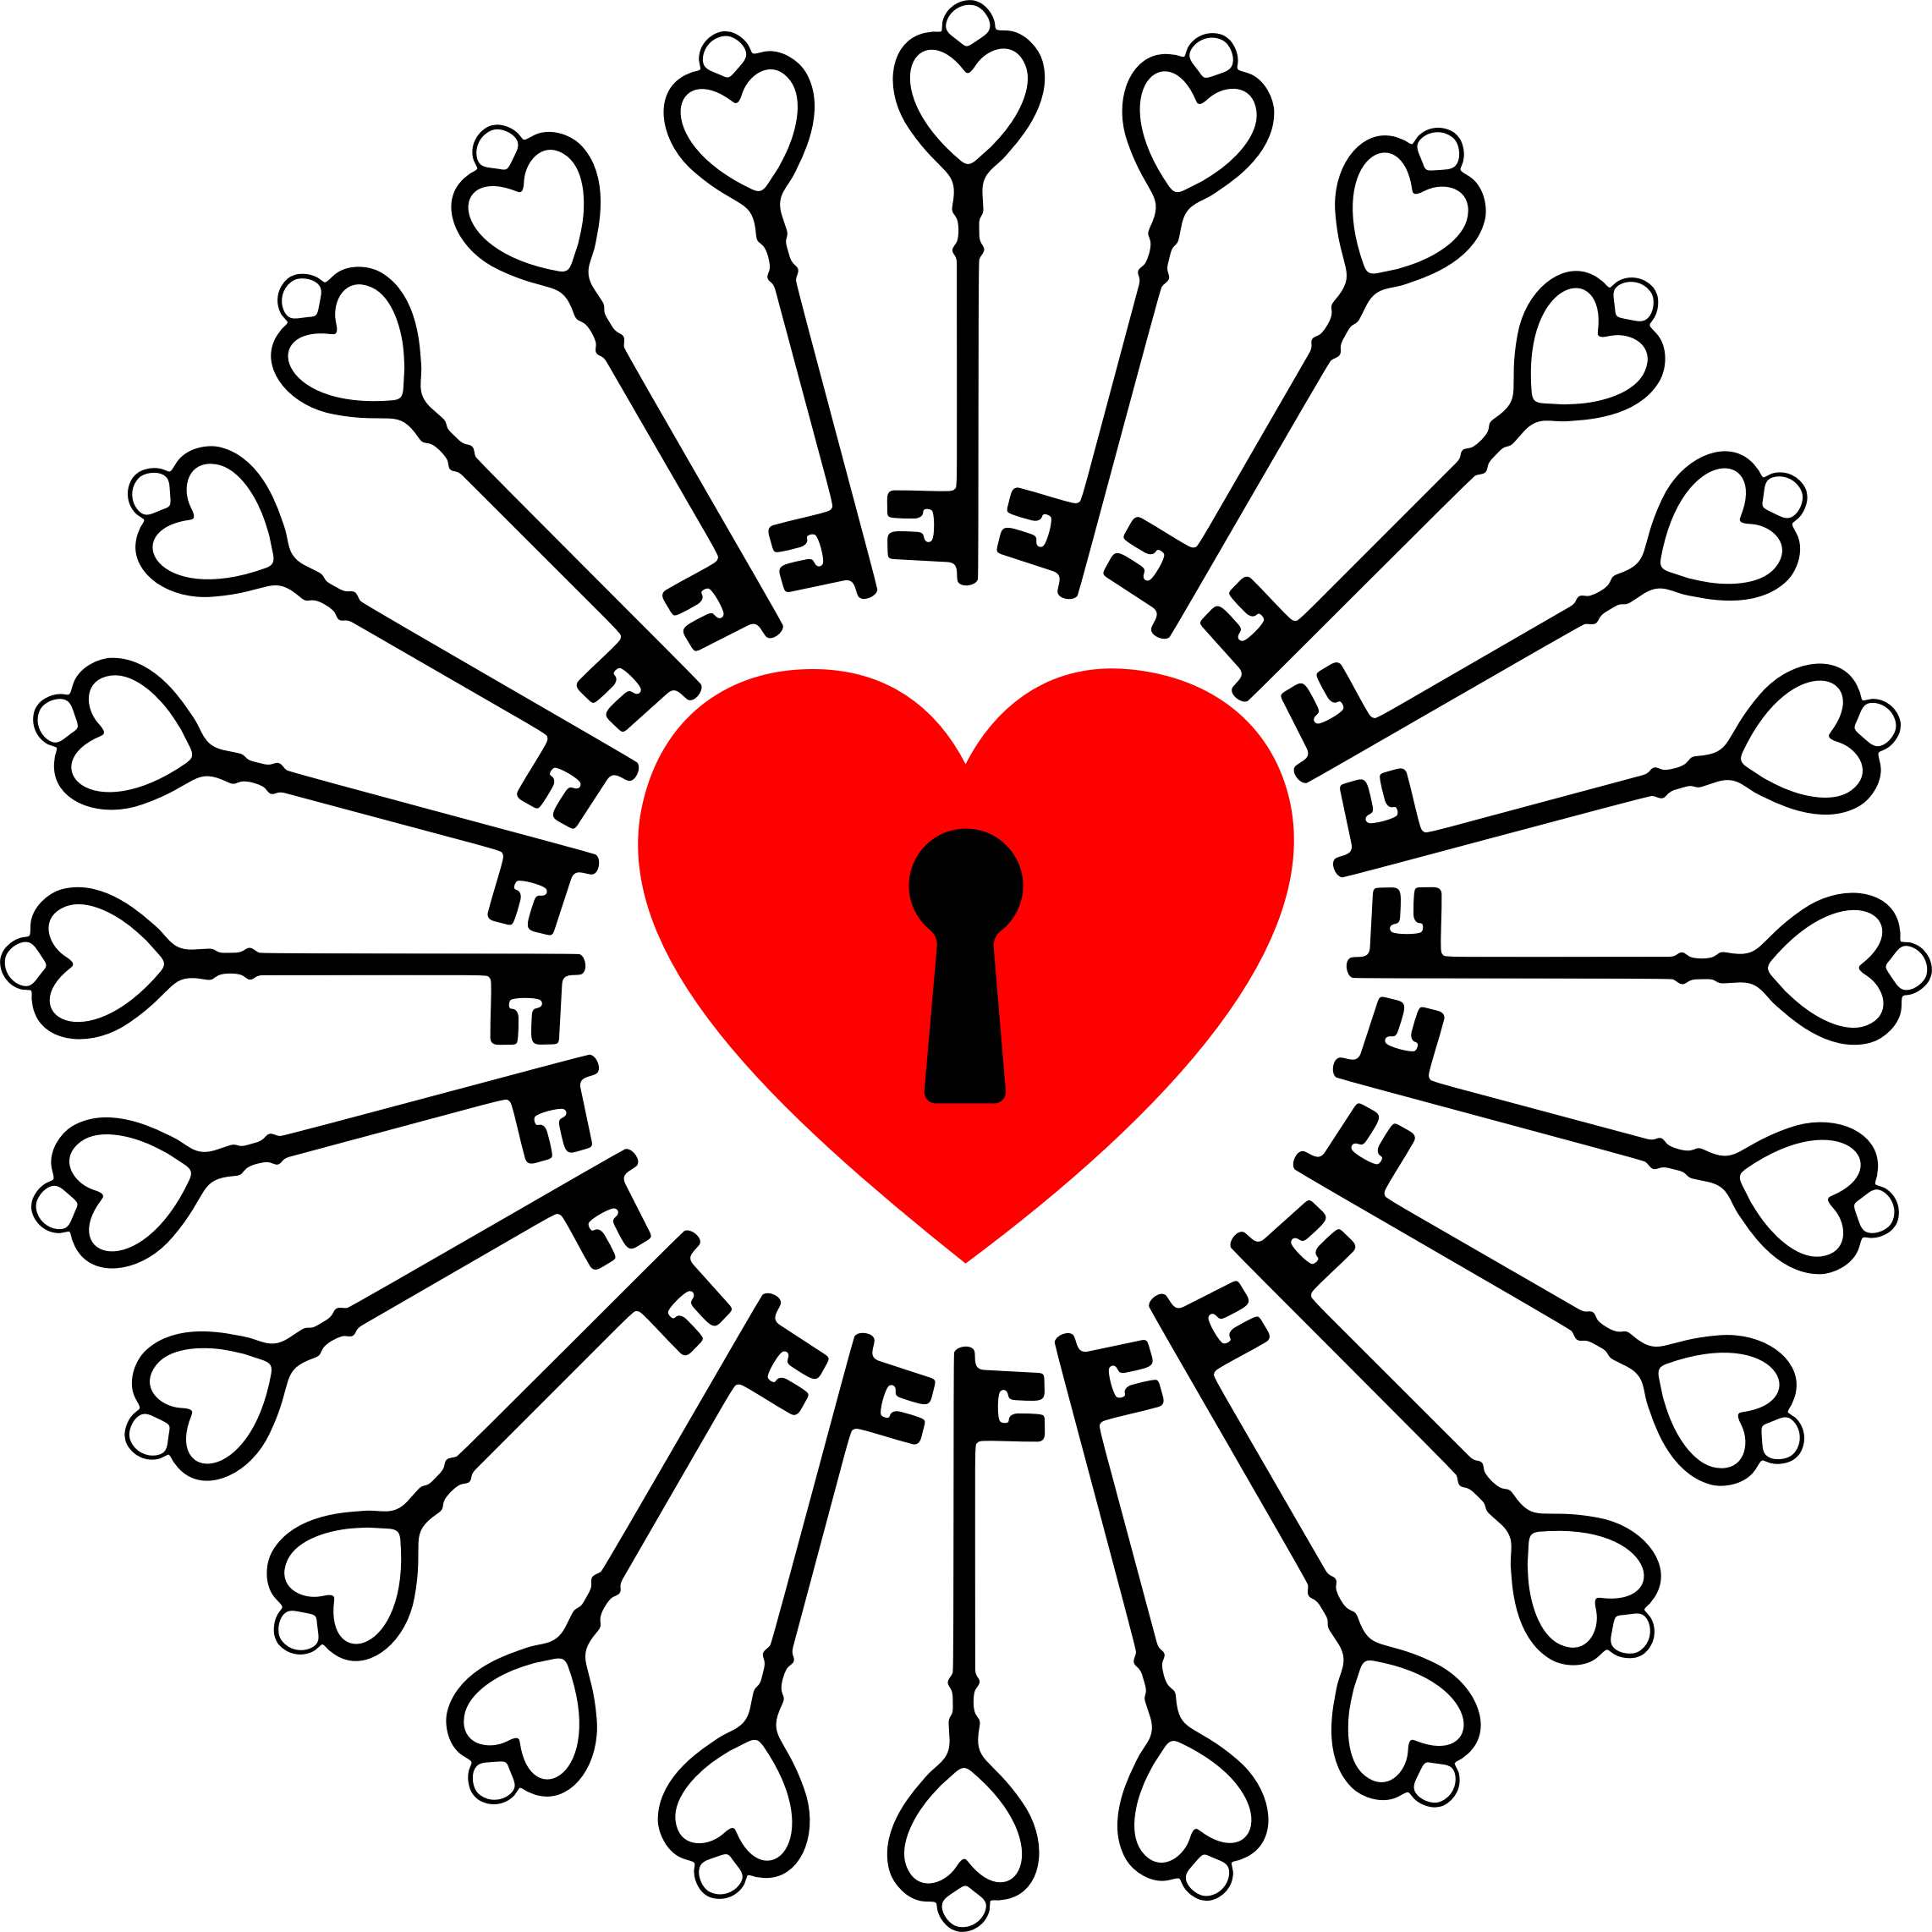 Heart and key clipart clip royalty free stock Clipart - Locked Heart And Keys clip royalty free stock